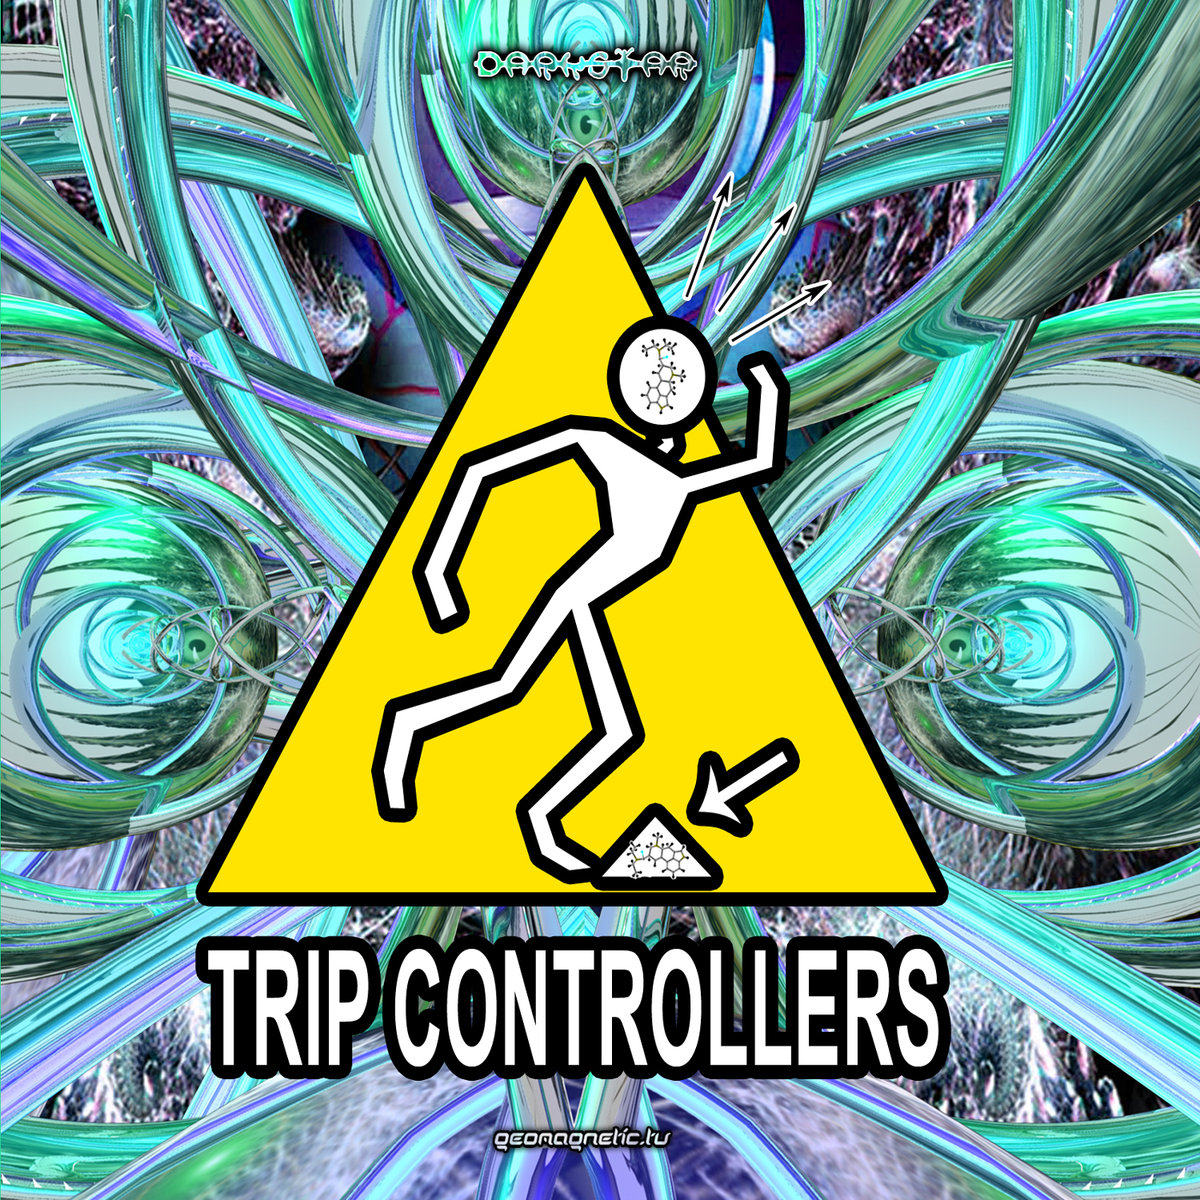 Twisted Reaction - iBrain Busters @ 'Various Artists - Trip Controllers (Compiled by Dr. Spook)' album (electronic, goa)